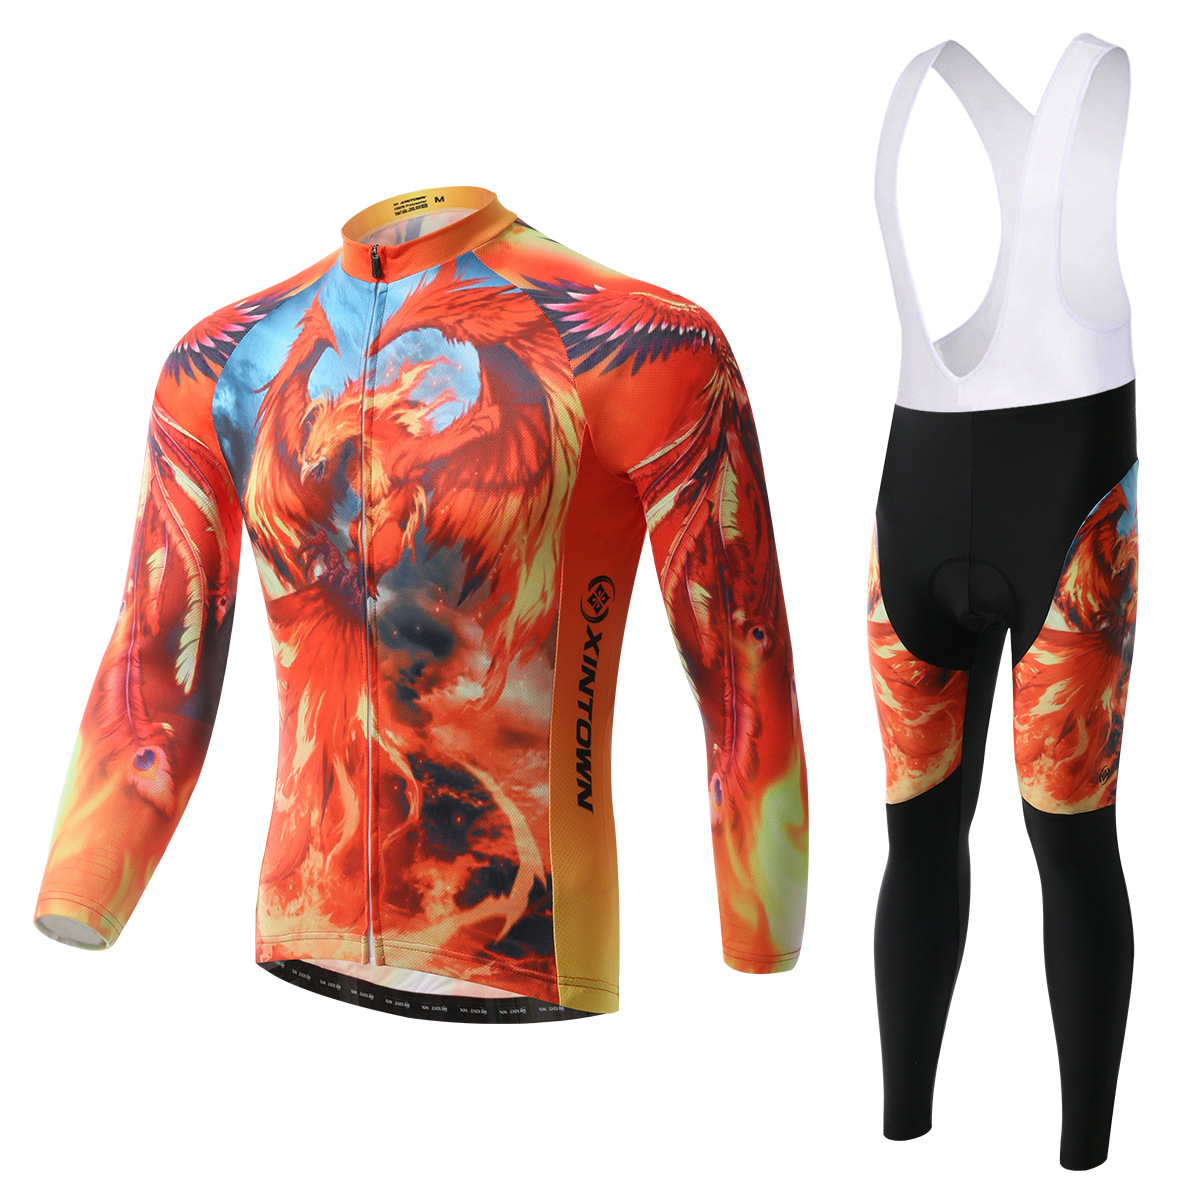 XINTOWN Phoenix bike riding jersey strap long-sleeved suit wear bicycle suits fleece wind warm functional underwear